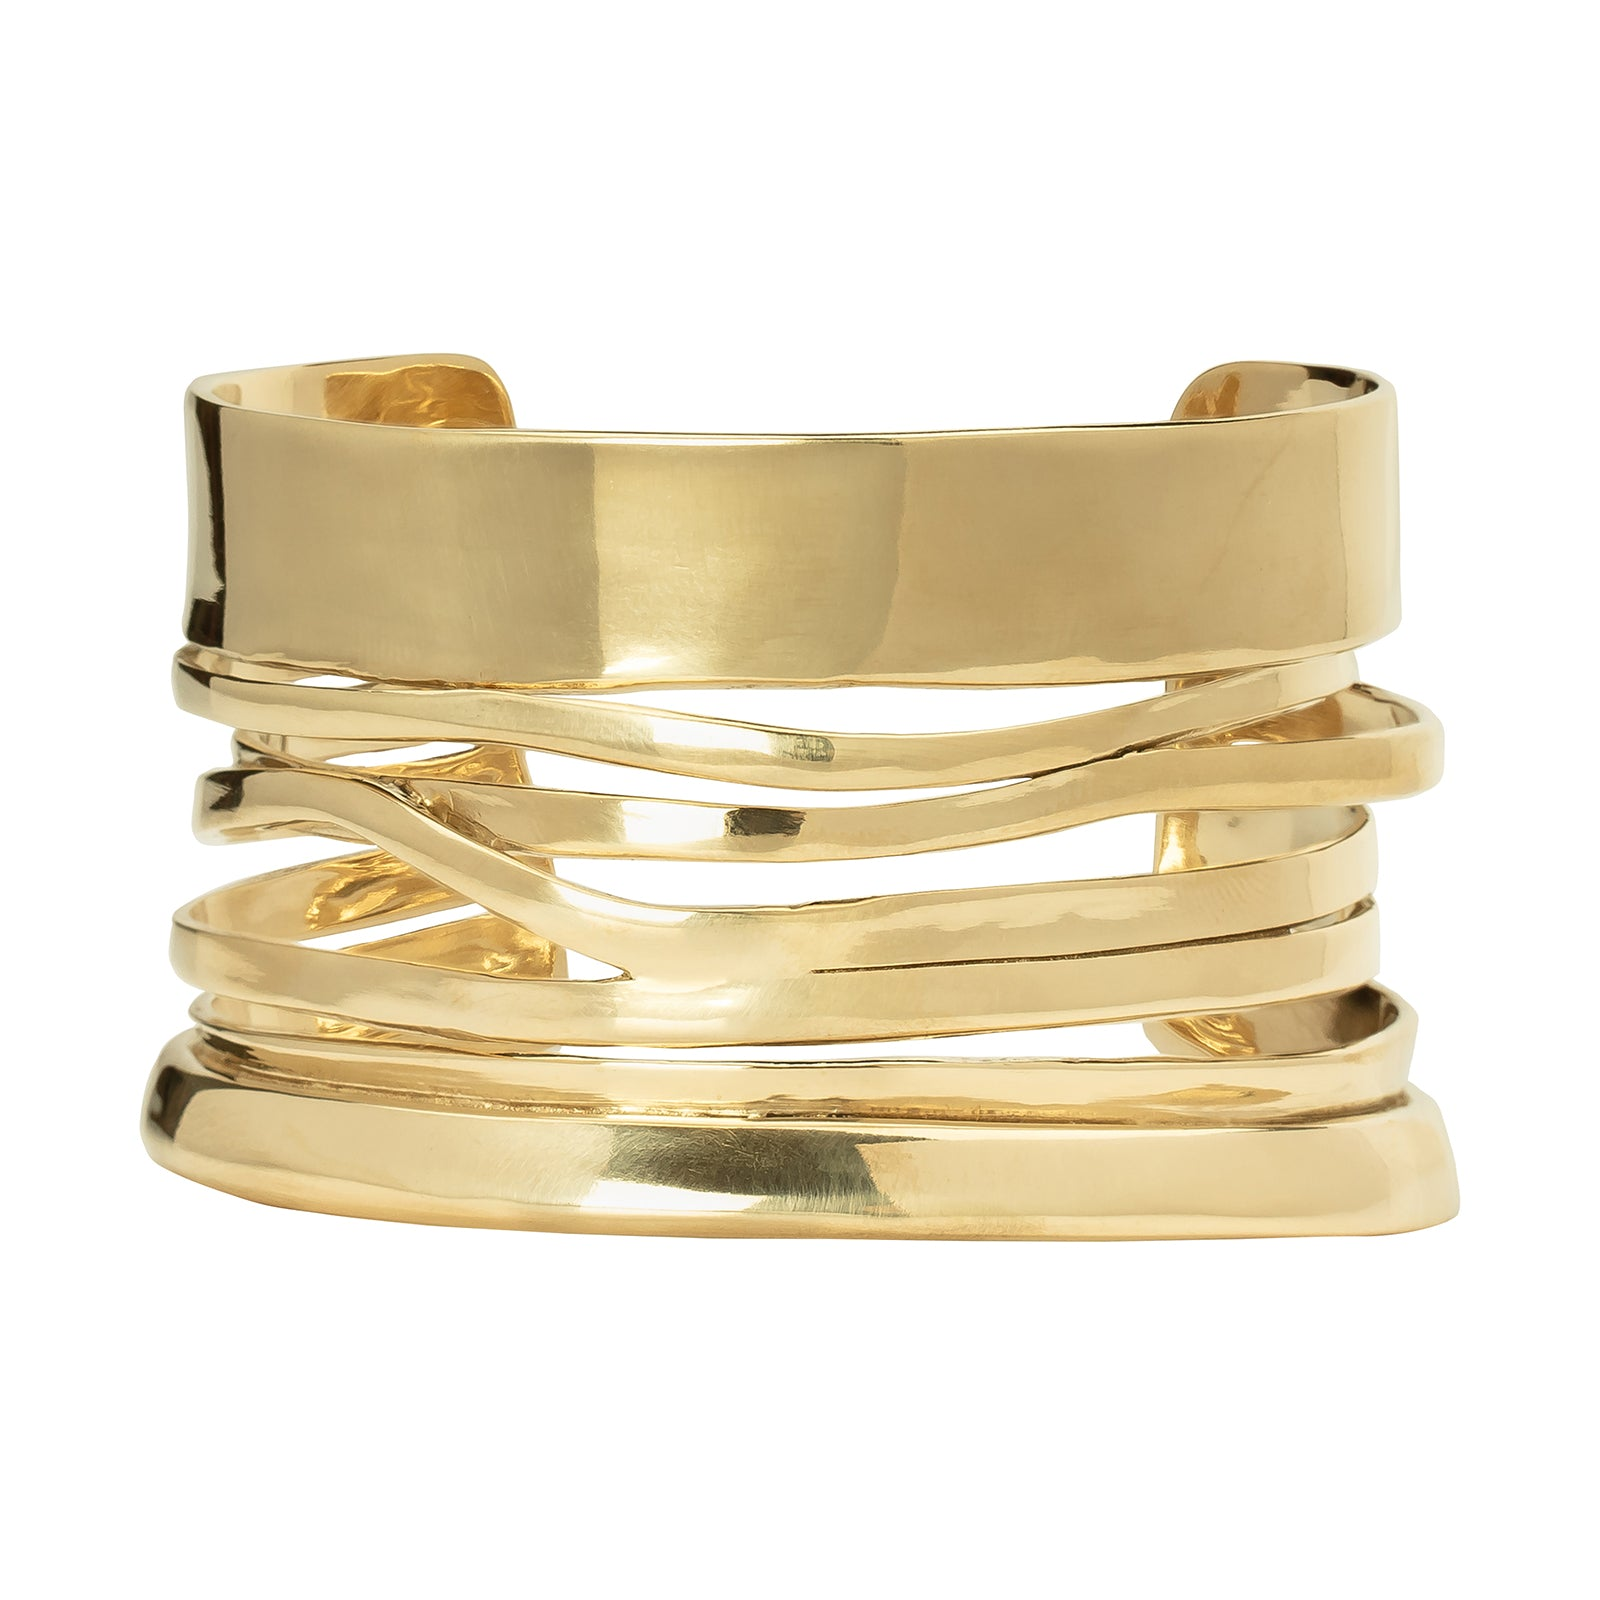 Ariana Boussard-Reifel Pele Cuff - Brass - Bracelets - Broken English Jewelry